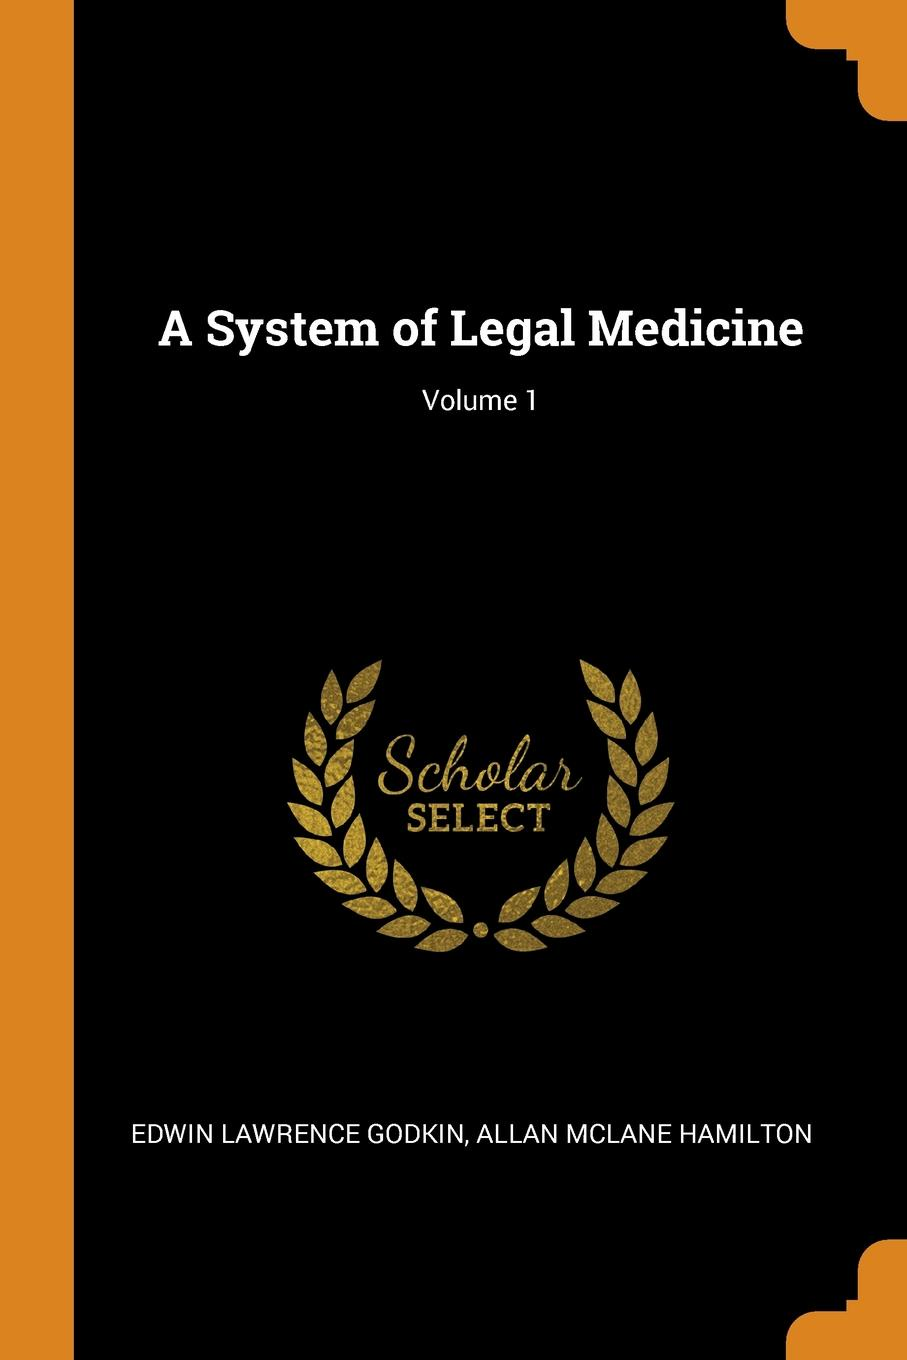 A System of Legal Medicine; Volume 1. Edwin Lawrence Godkin, Allan McLane Hamilton